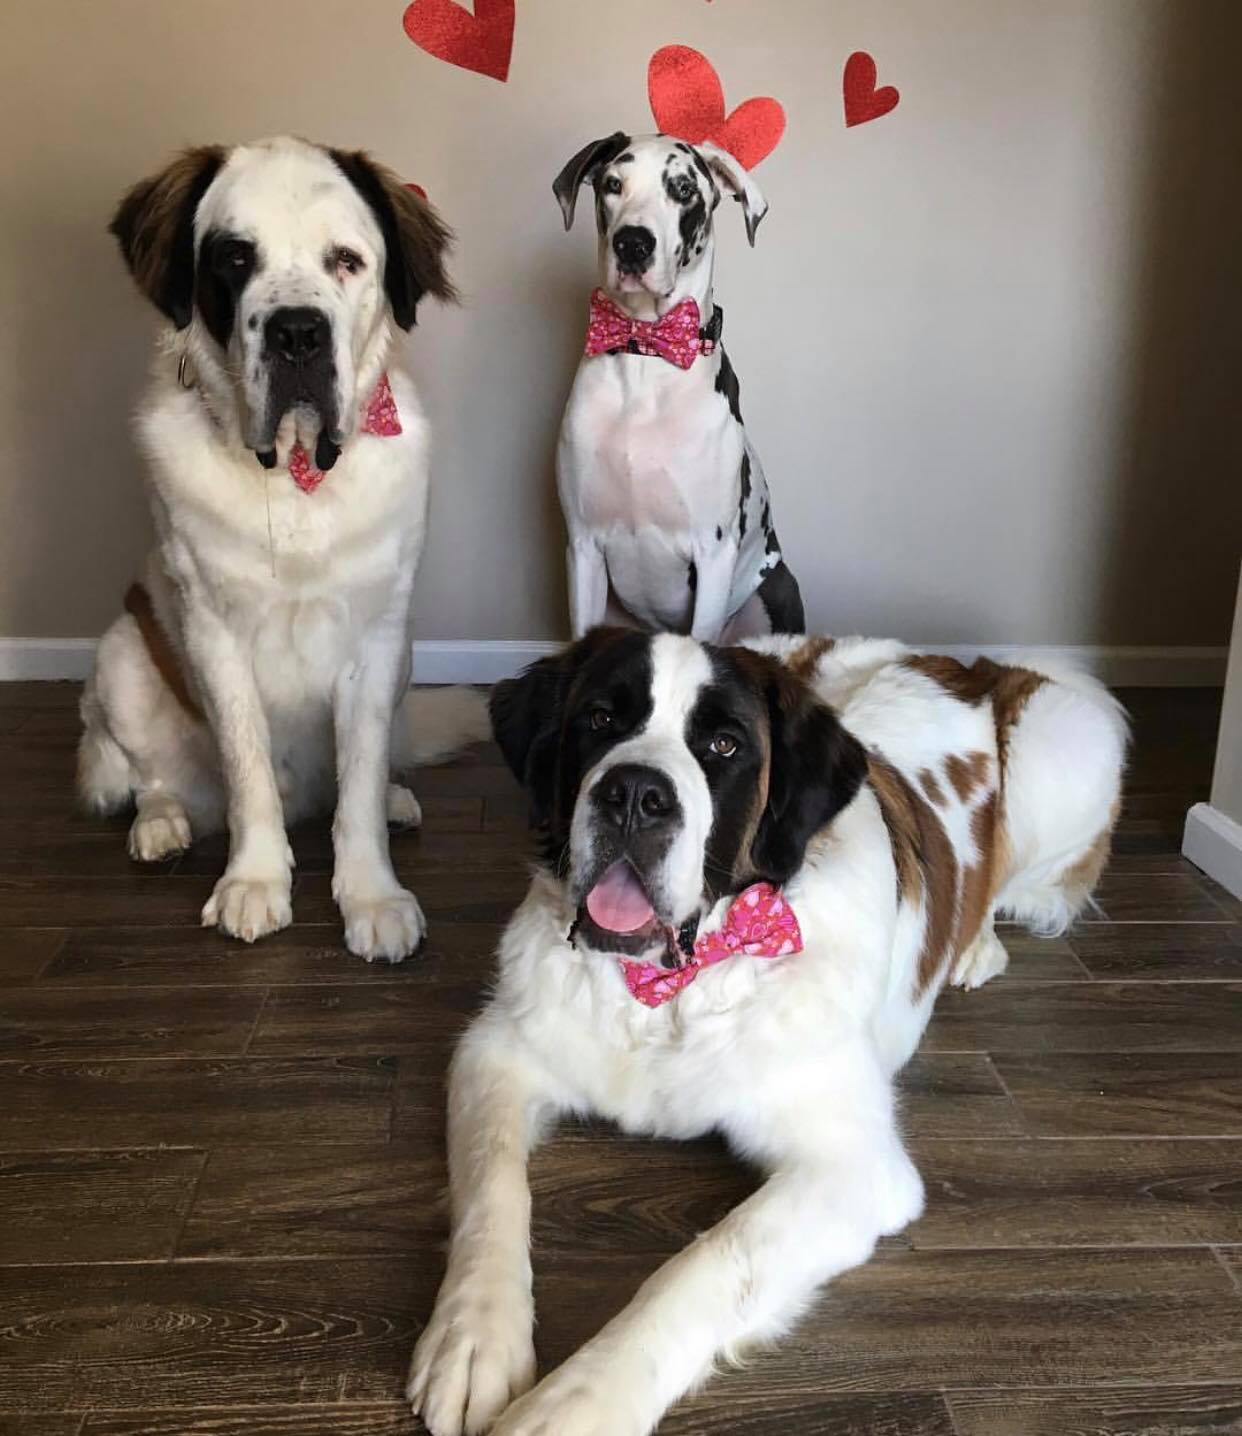 2 Saint Bernards and a Great Dane